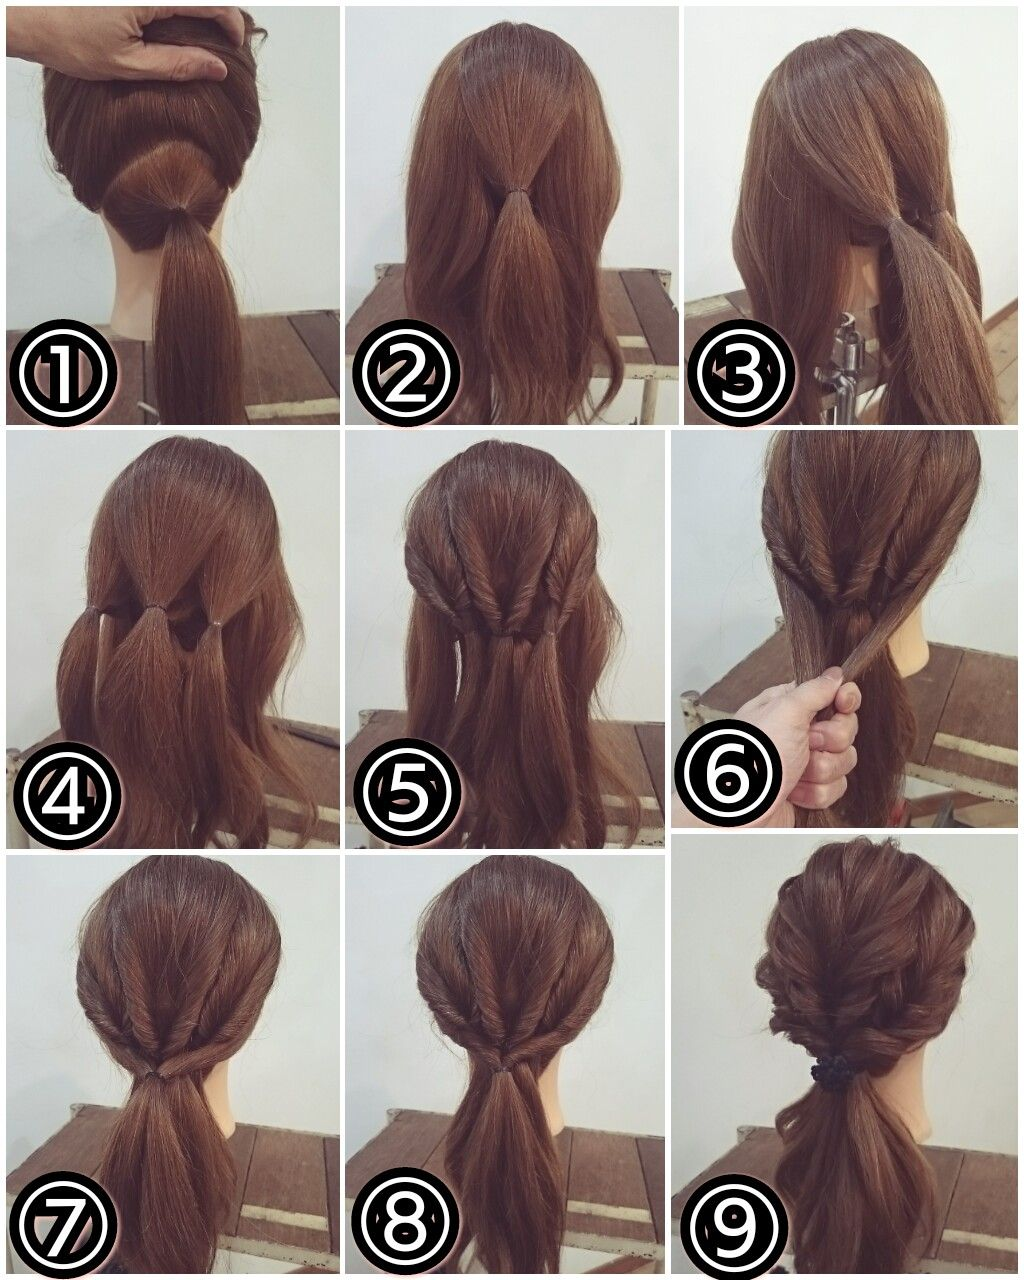 Pin by mrspark on braids pinterest hair style makeup and hair